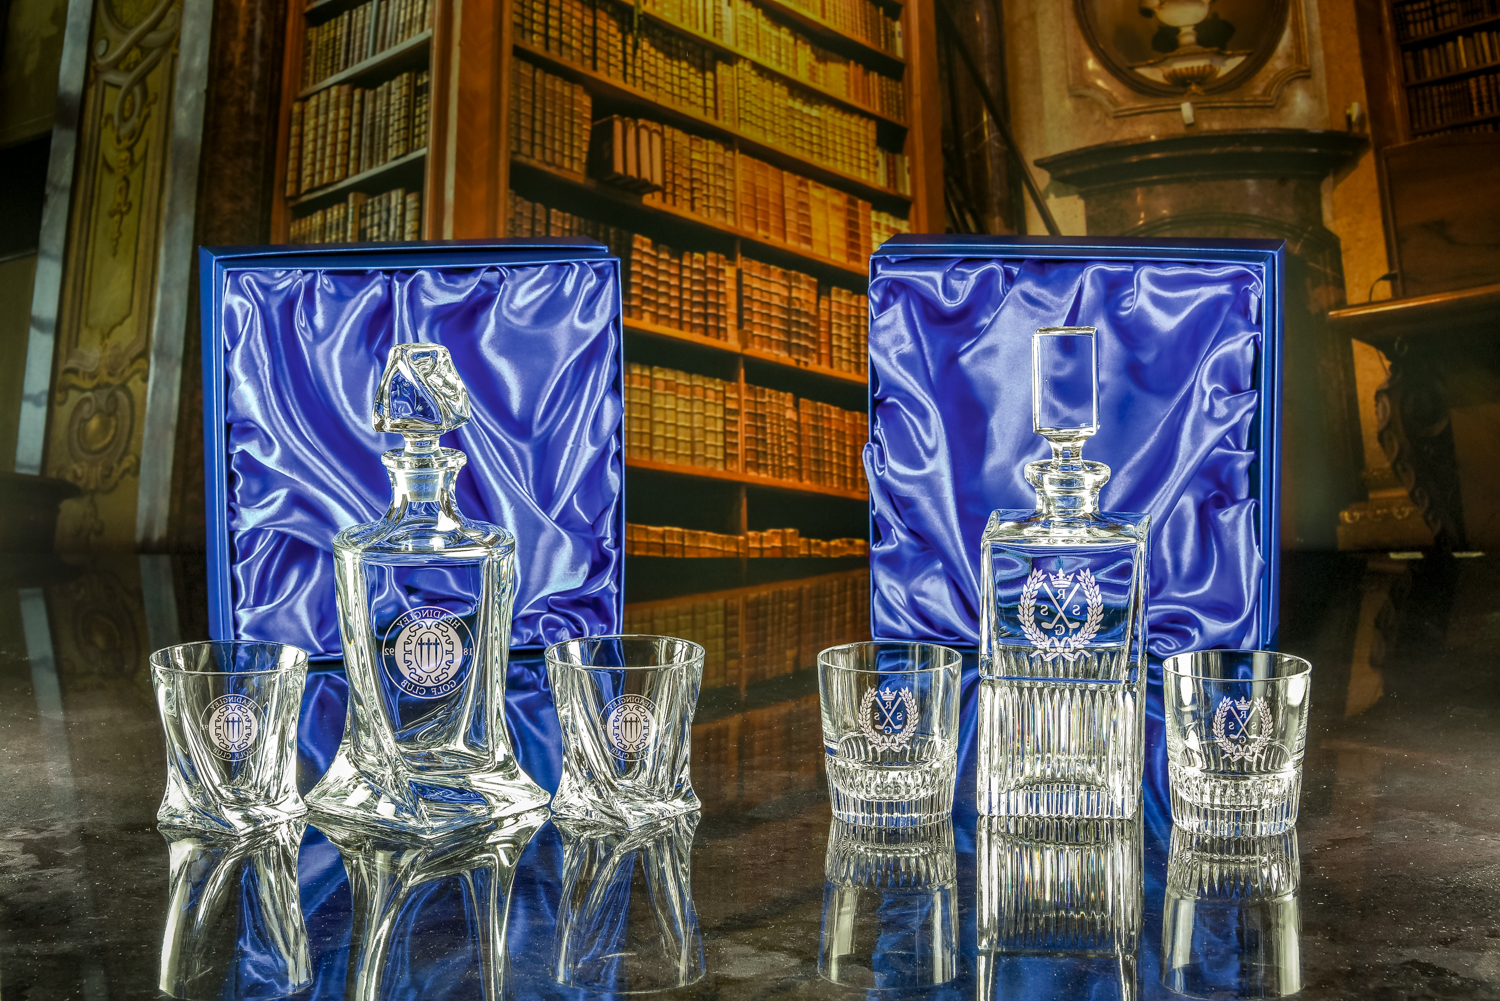 Majestic Crystal 2019 Brochure photos Boxed Set of Barley Decanter & Two Barley Tumblers & Olympic D